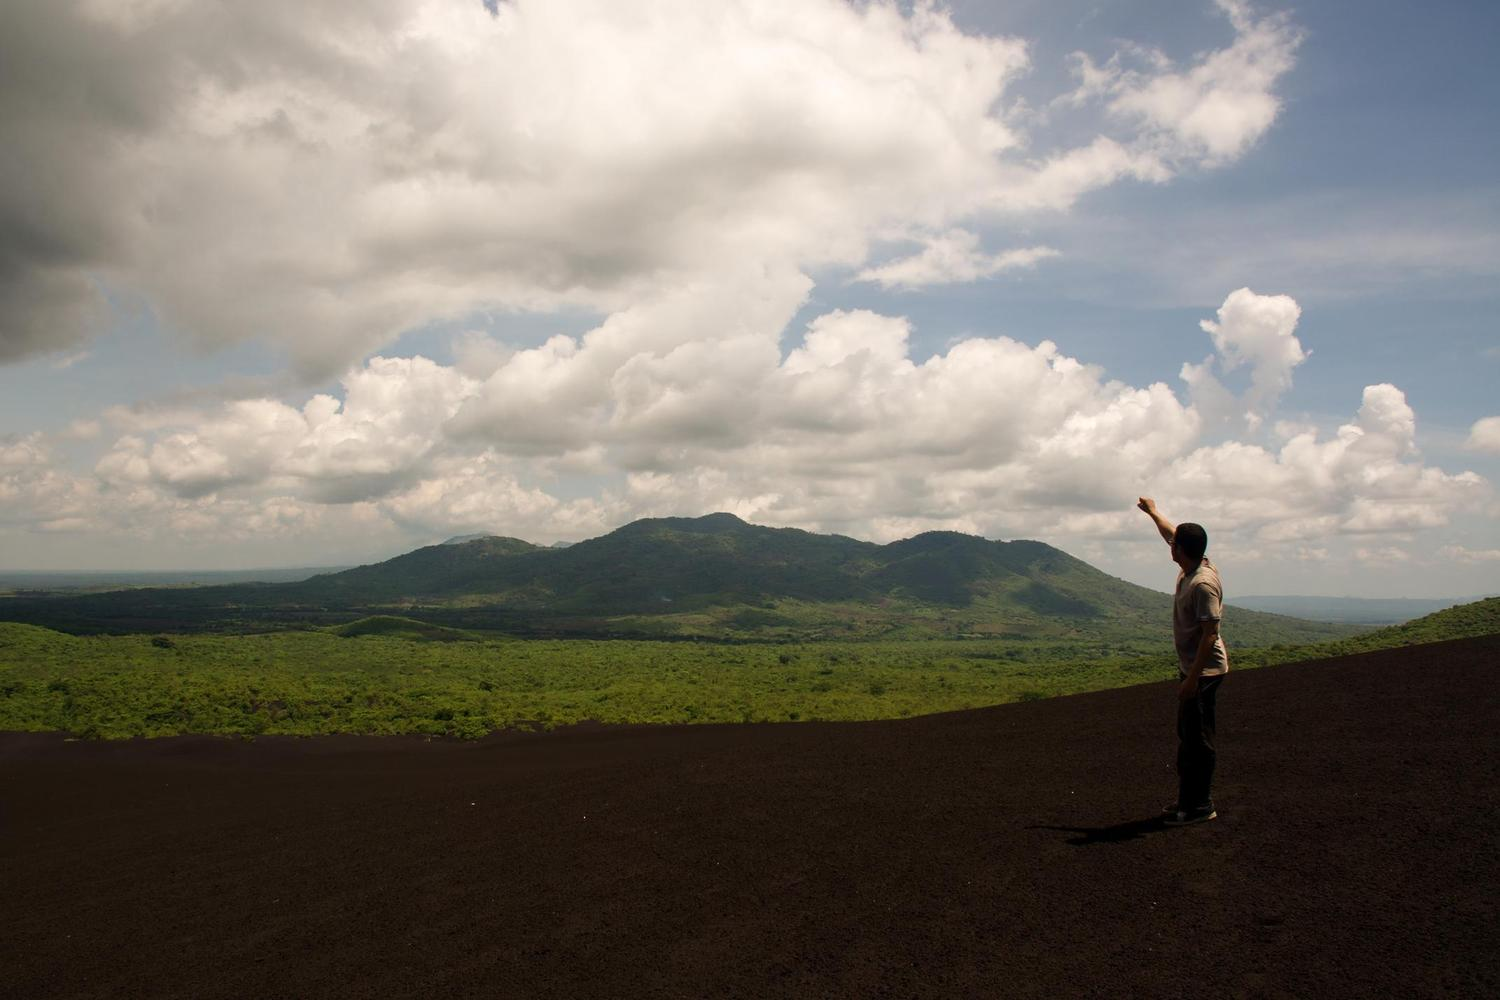 Guide describing the landscapes of Cerro Negro, in northern Nicaragua